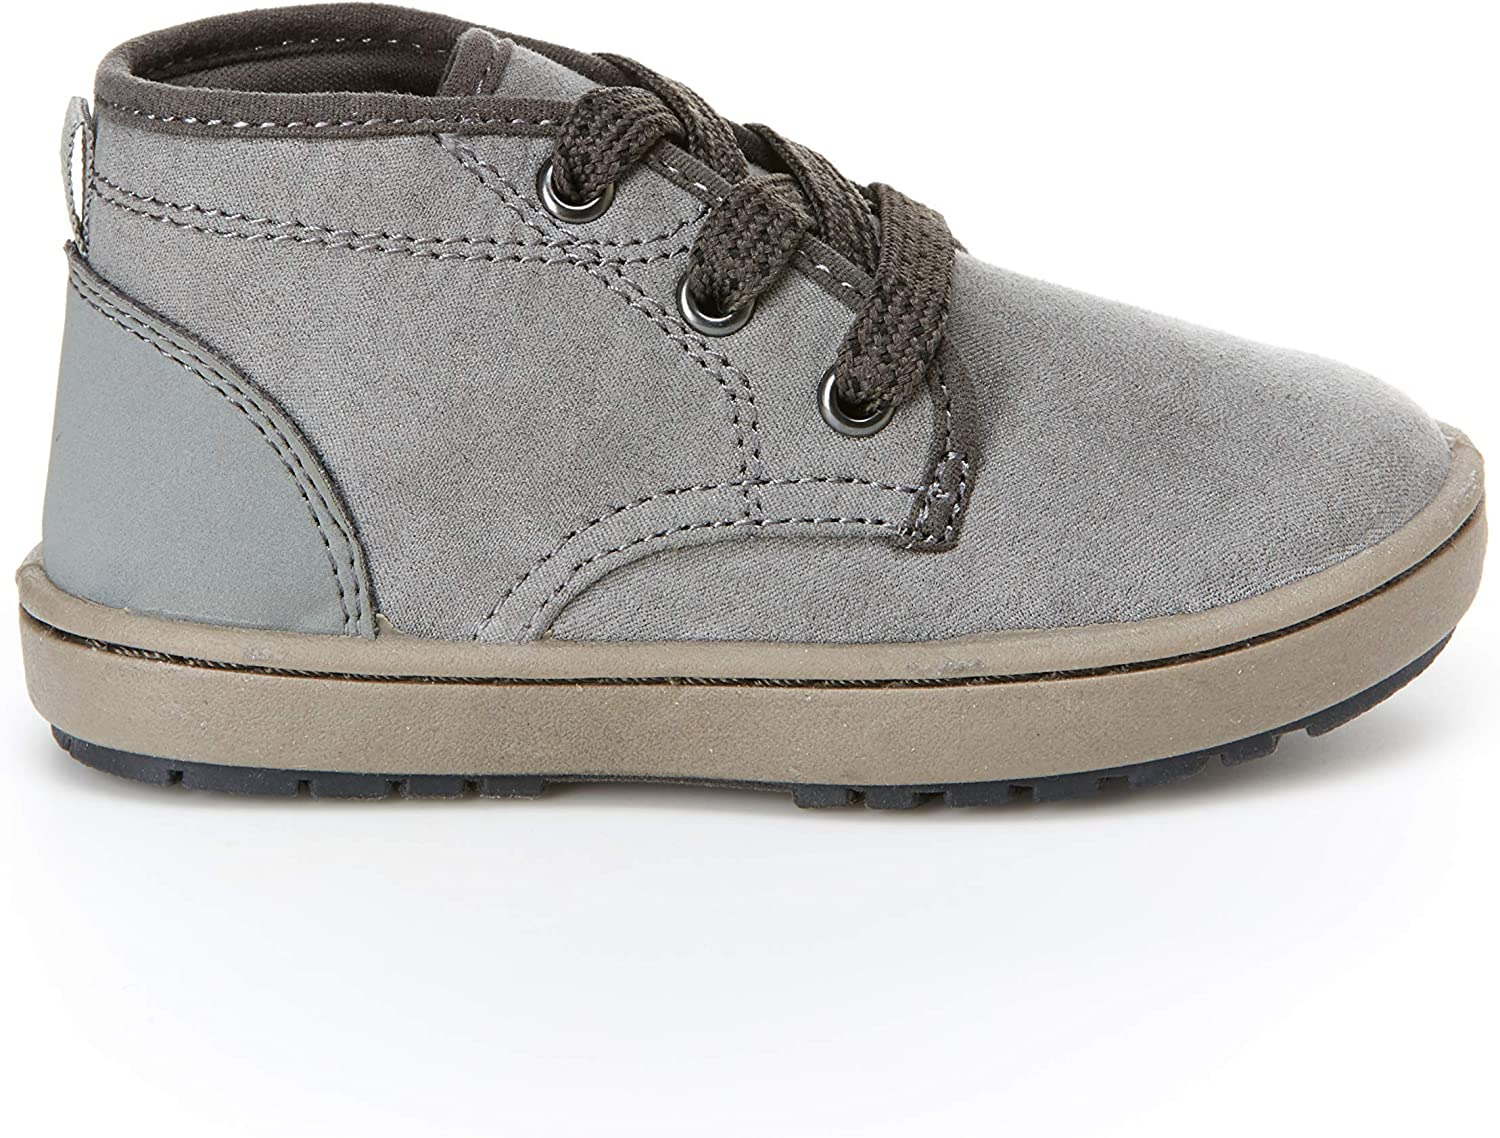 Noah Chukka Boot Simple Joys by Carters Toddler and Little Boys 1-8 yrs